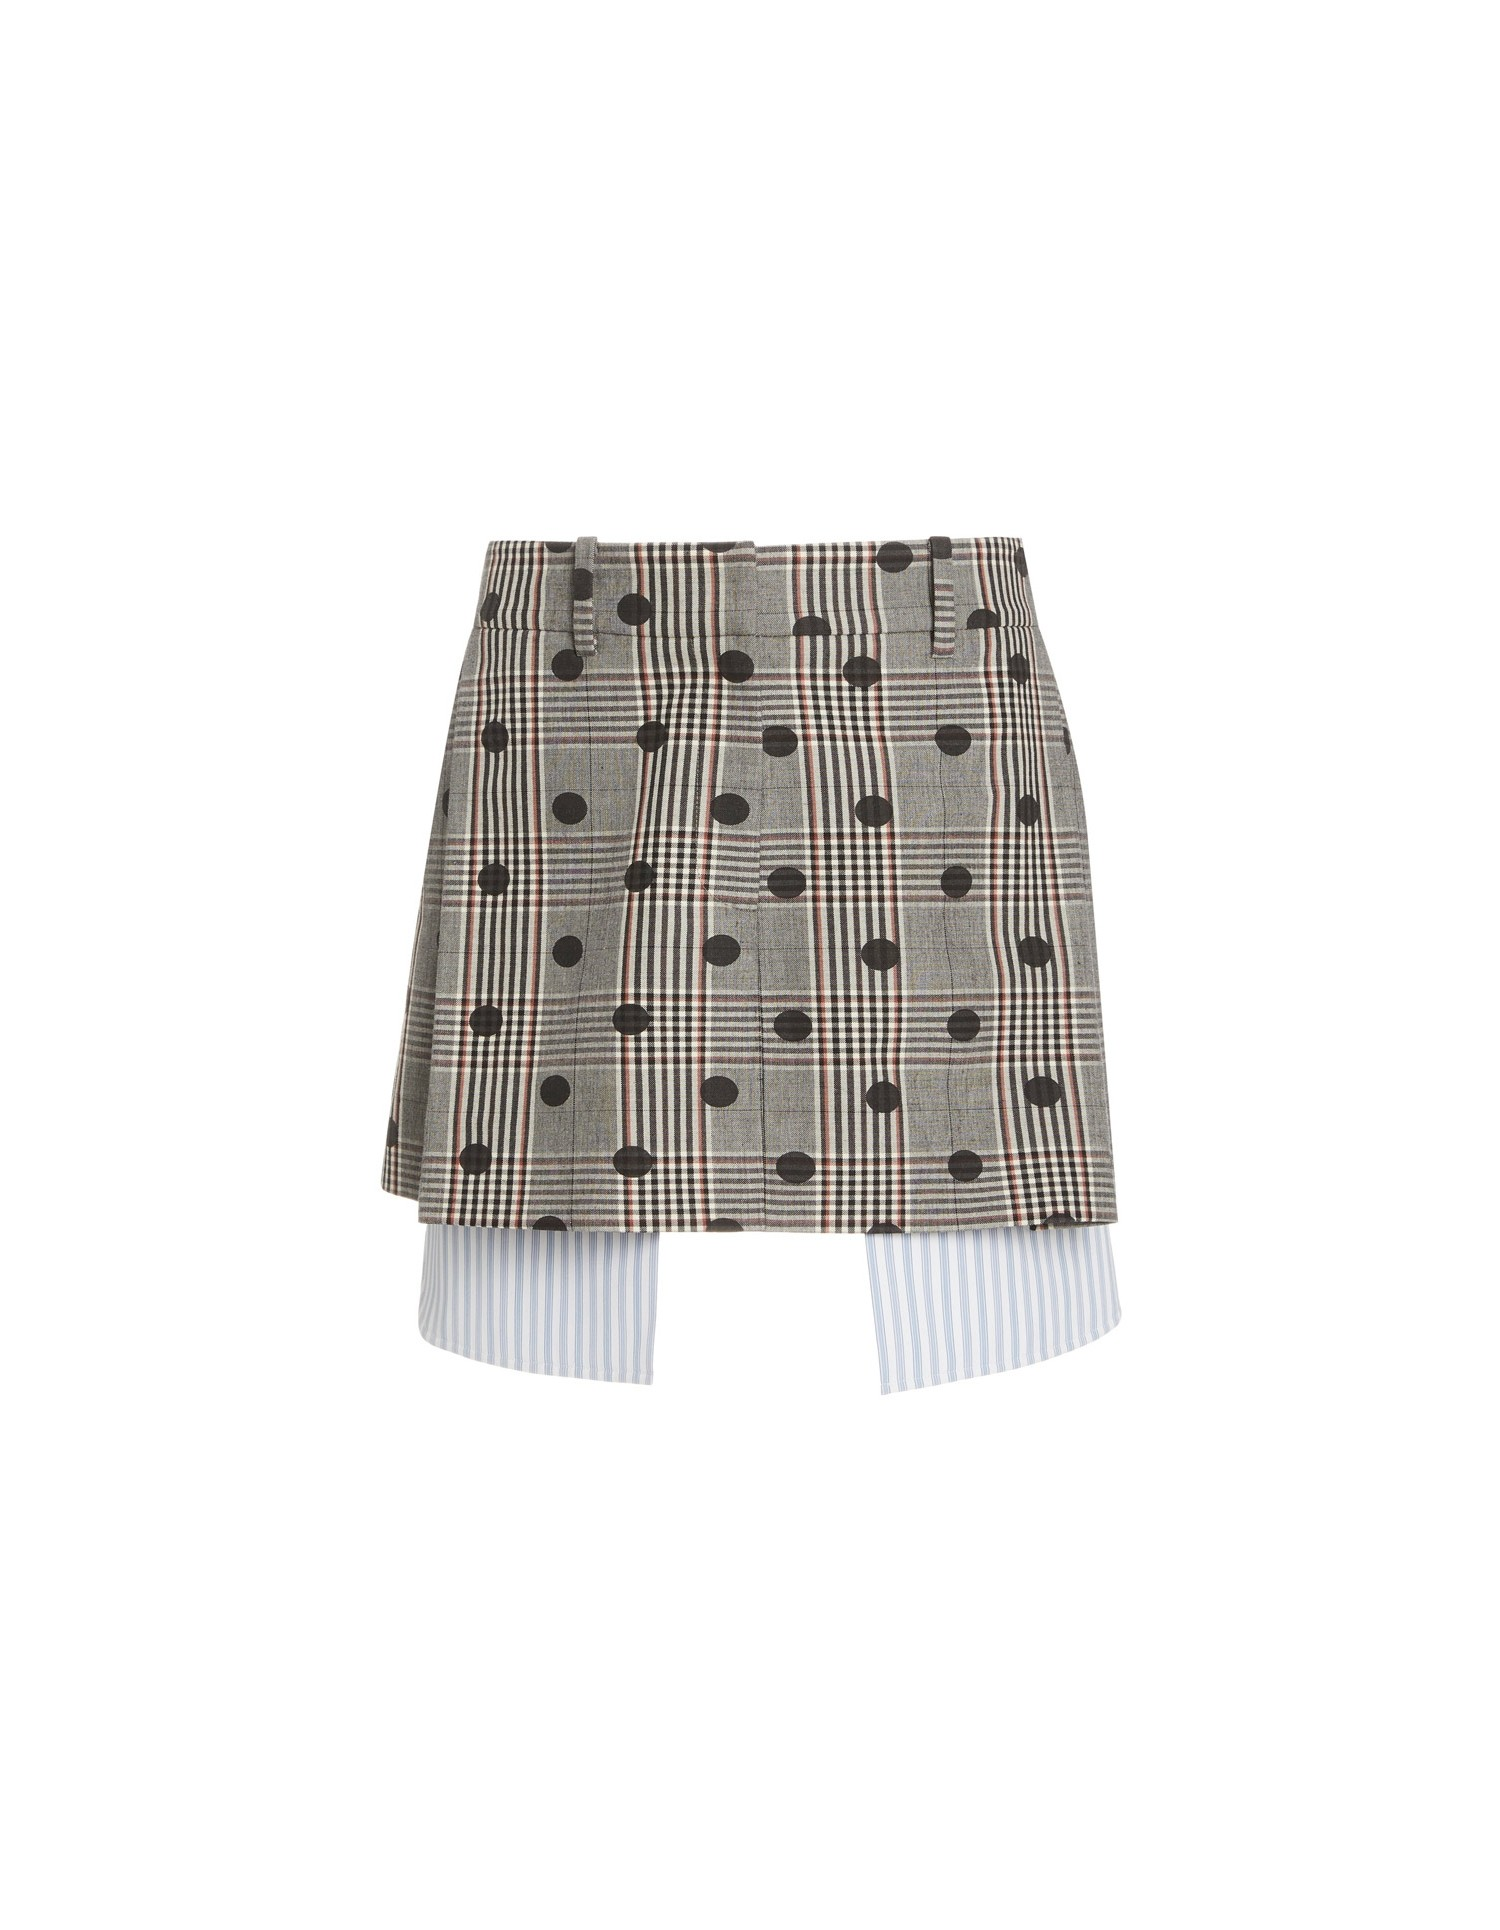 MONSE Polka Dot Plaid Extended Pocket Mini Skirt Flat Front